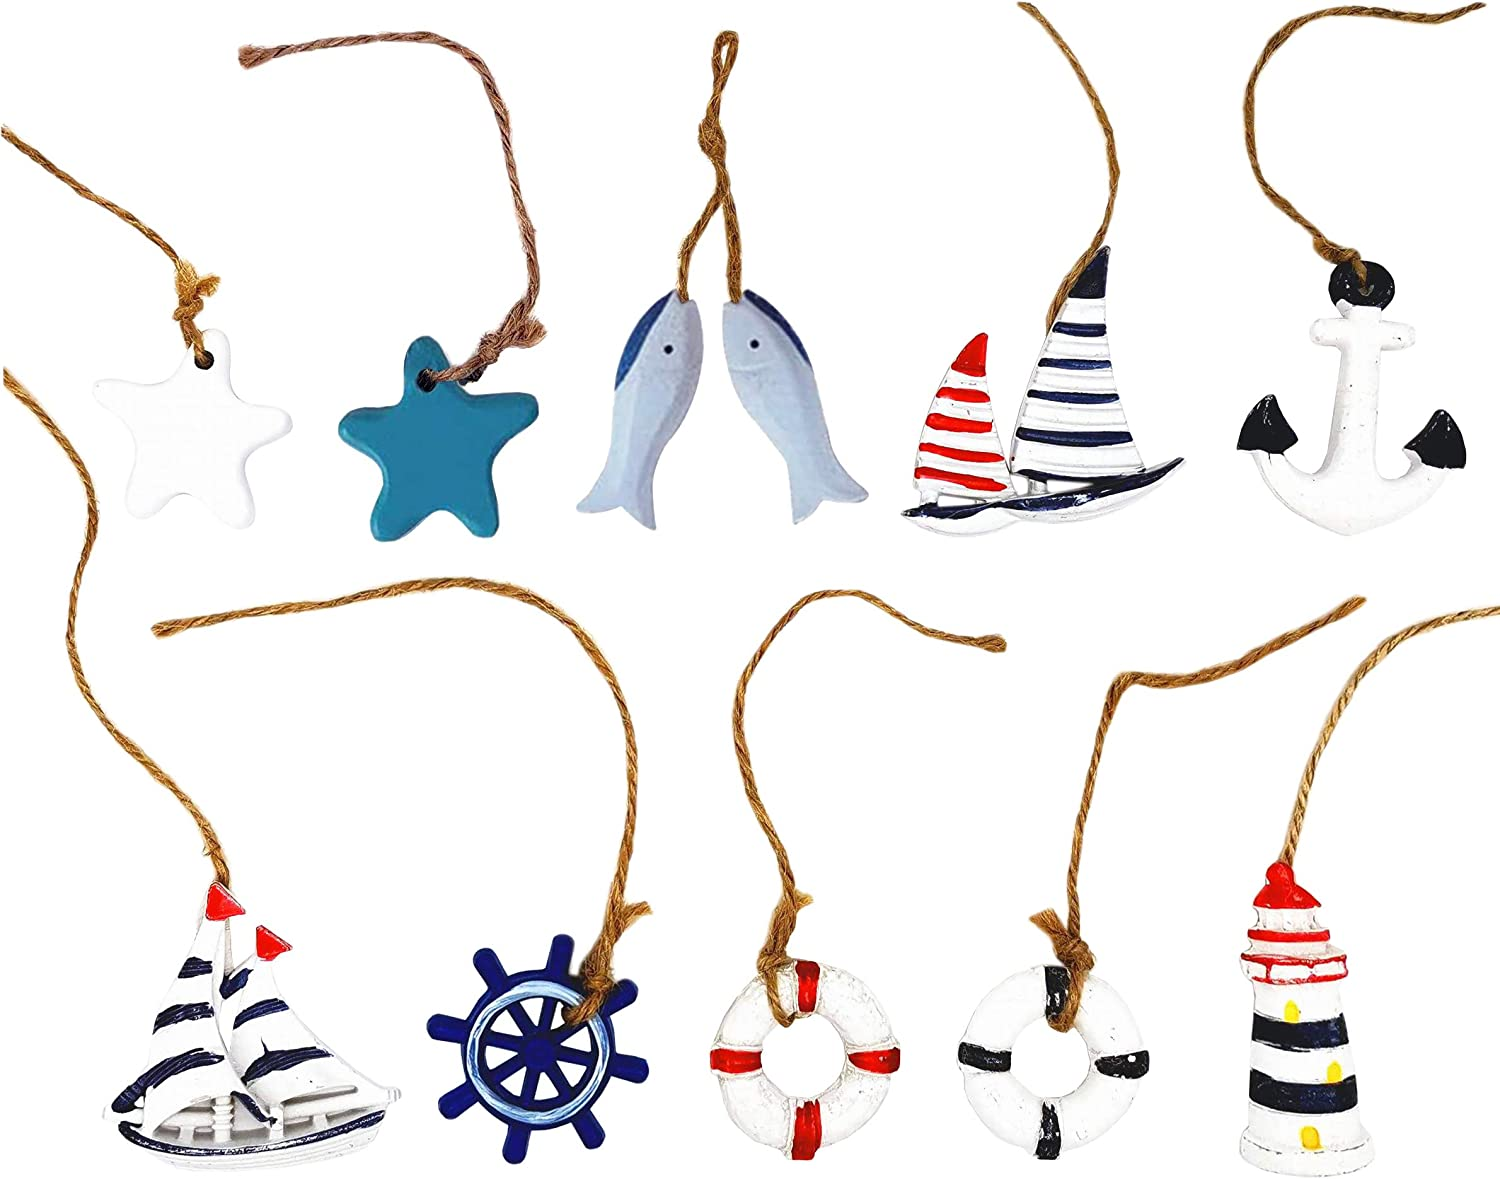 None branded Wooden Nautical Hanging Decoration Mini Beach Ornament Set Anchor Life Ring Starfish Sailboat Hangings Home Decor, 10 PCS by Baryuefull